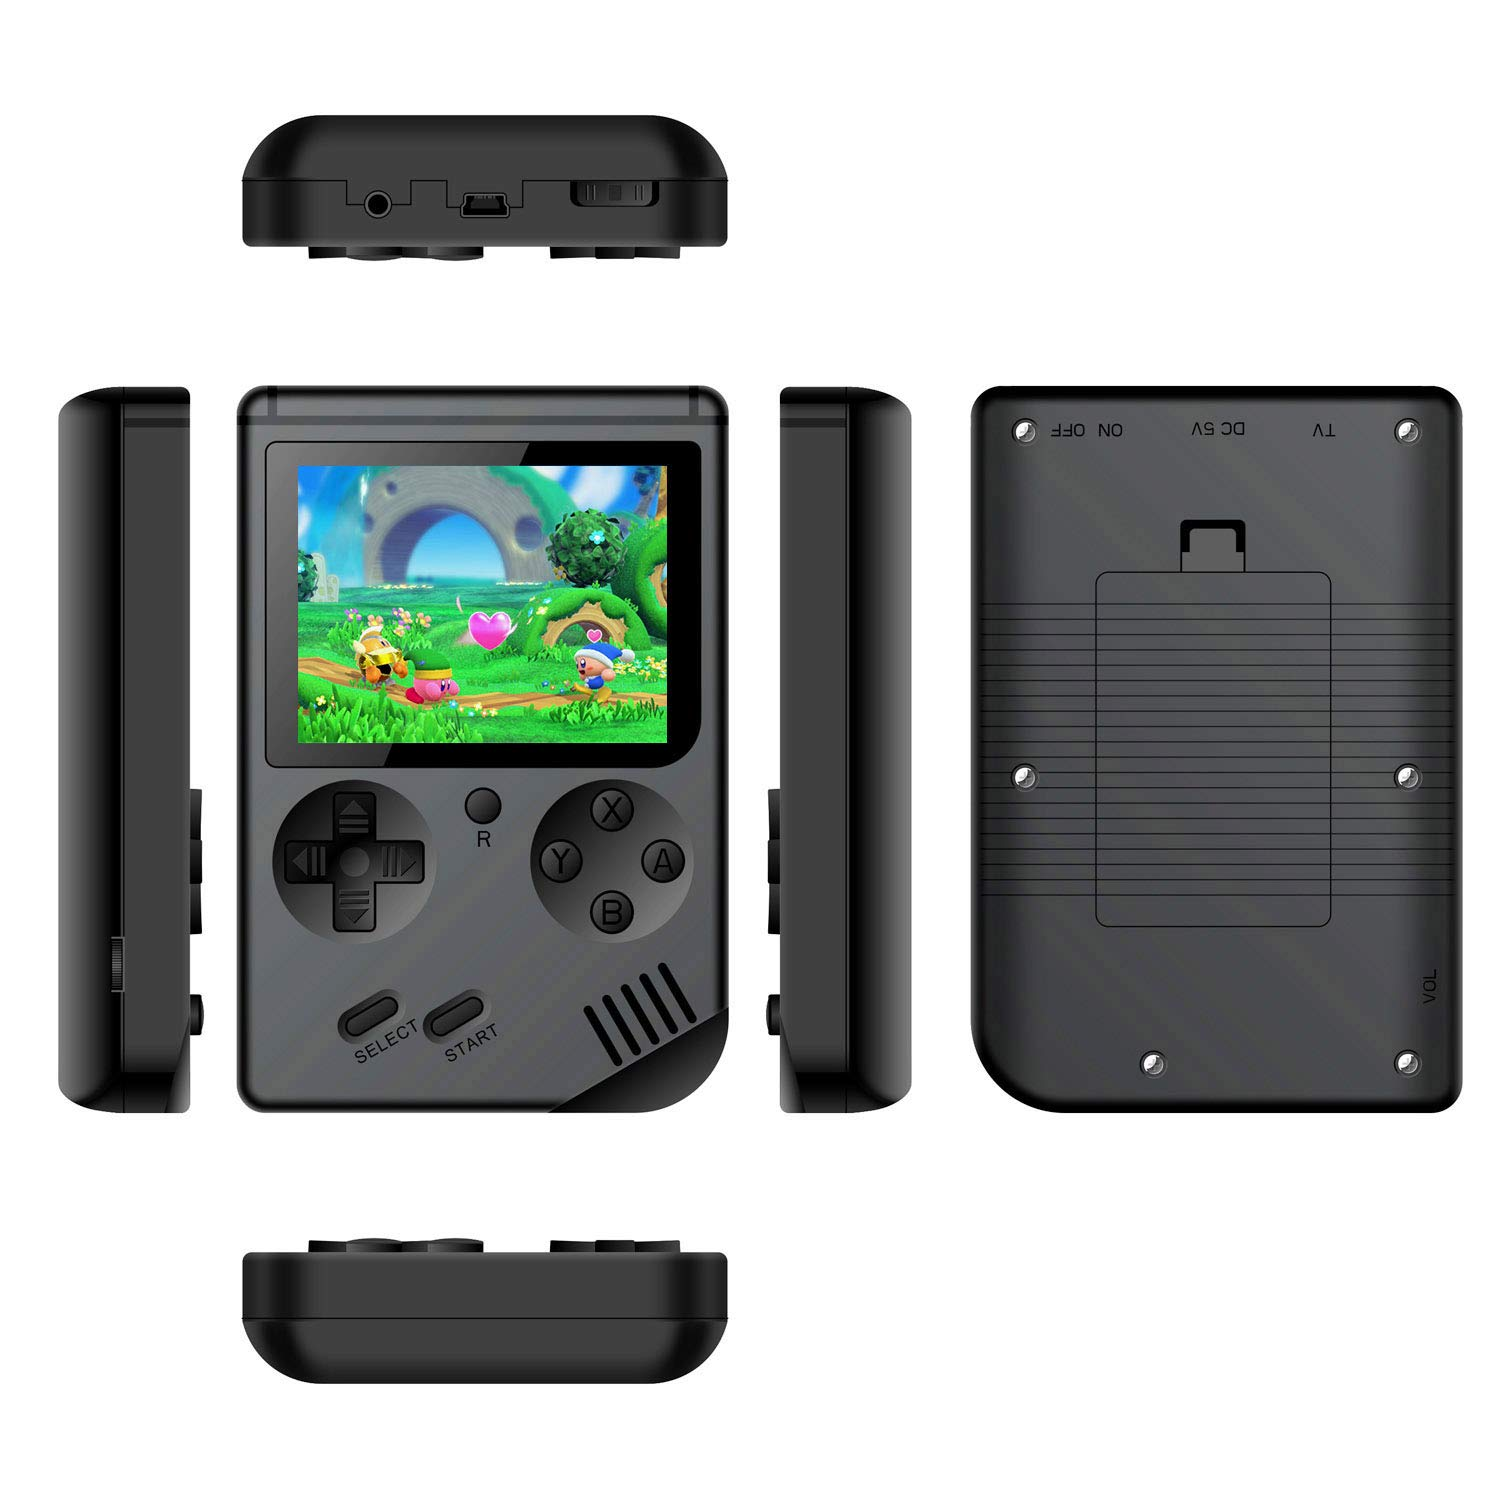 Handheld Games Console for Kids Adults - Retro Video Games Consoles 3 inch Screen 168 Classic Games 8 Bit Game Player with AV Cable Can Play on TV (Black) by Chilartalent (Image #5)